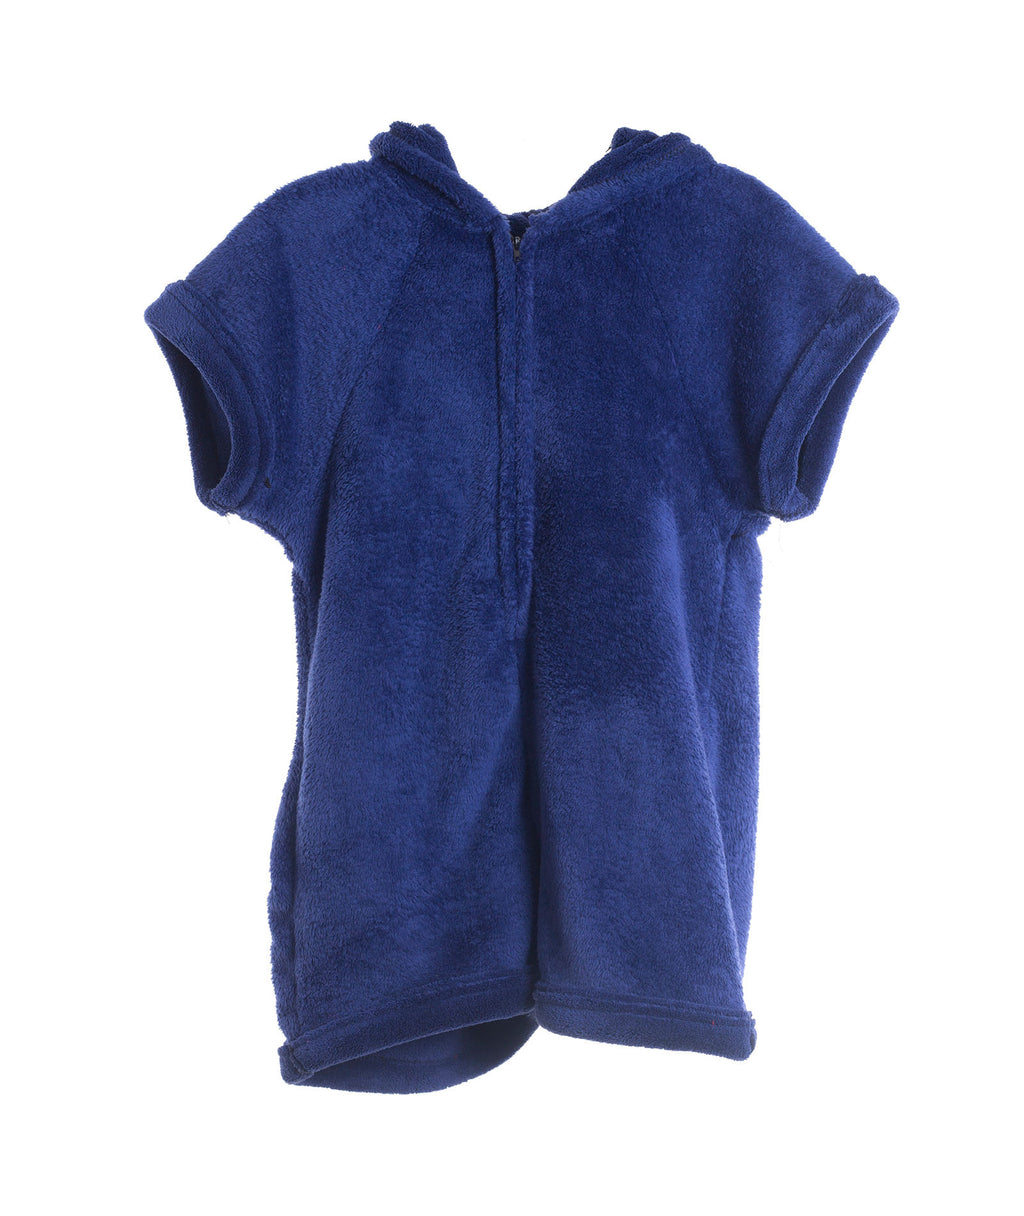 Made with Love and Kisses Girls Navy Plush Romper - Frankie's on the Park